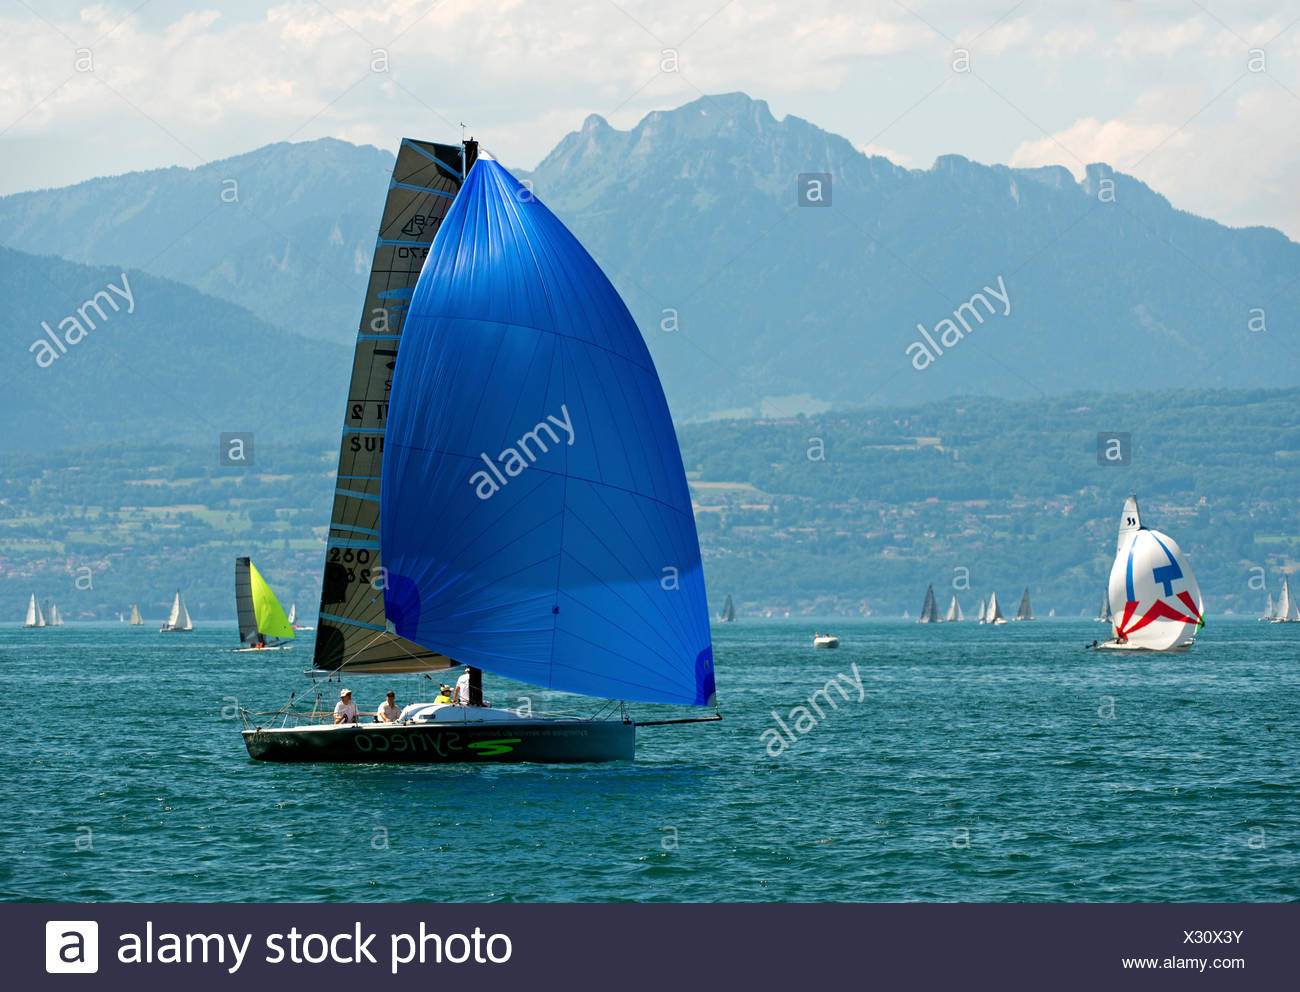 Sailboat of the Luthi 870 type with spinnaker headsail on Lake Geneva near Morges, Vaud Alps at back, Alpes vaudoises - Stock Image